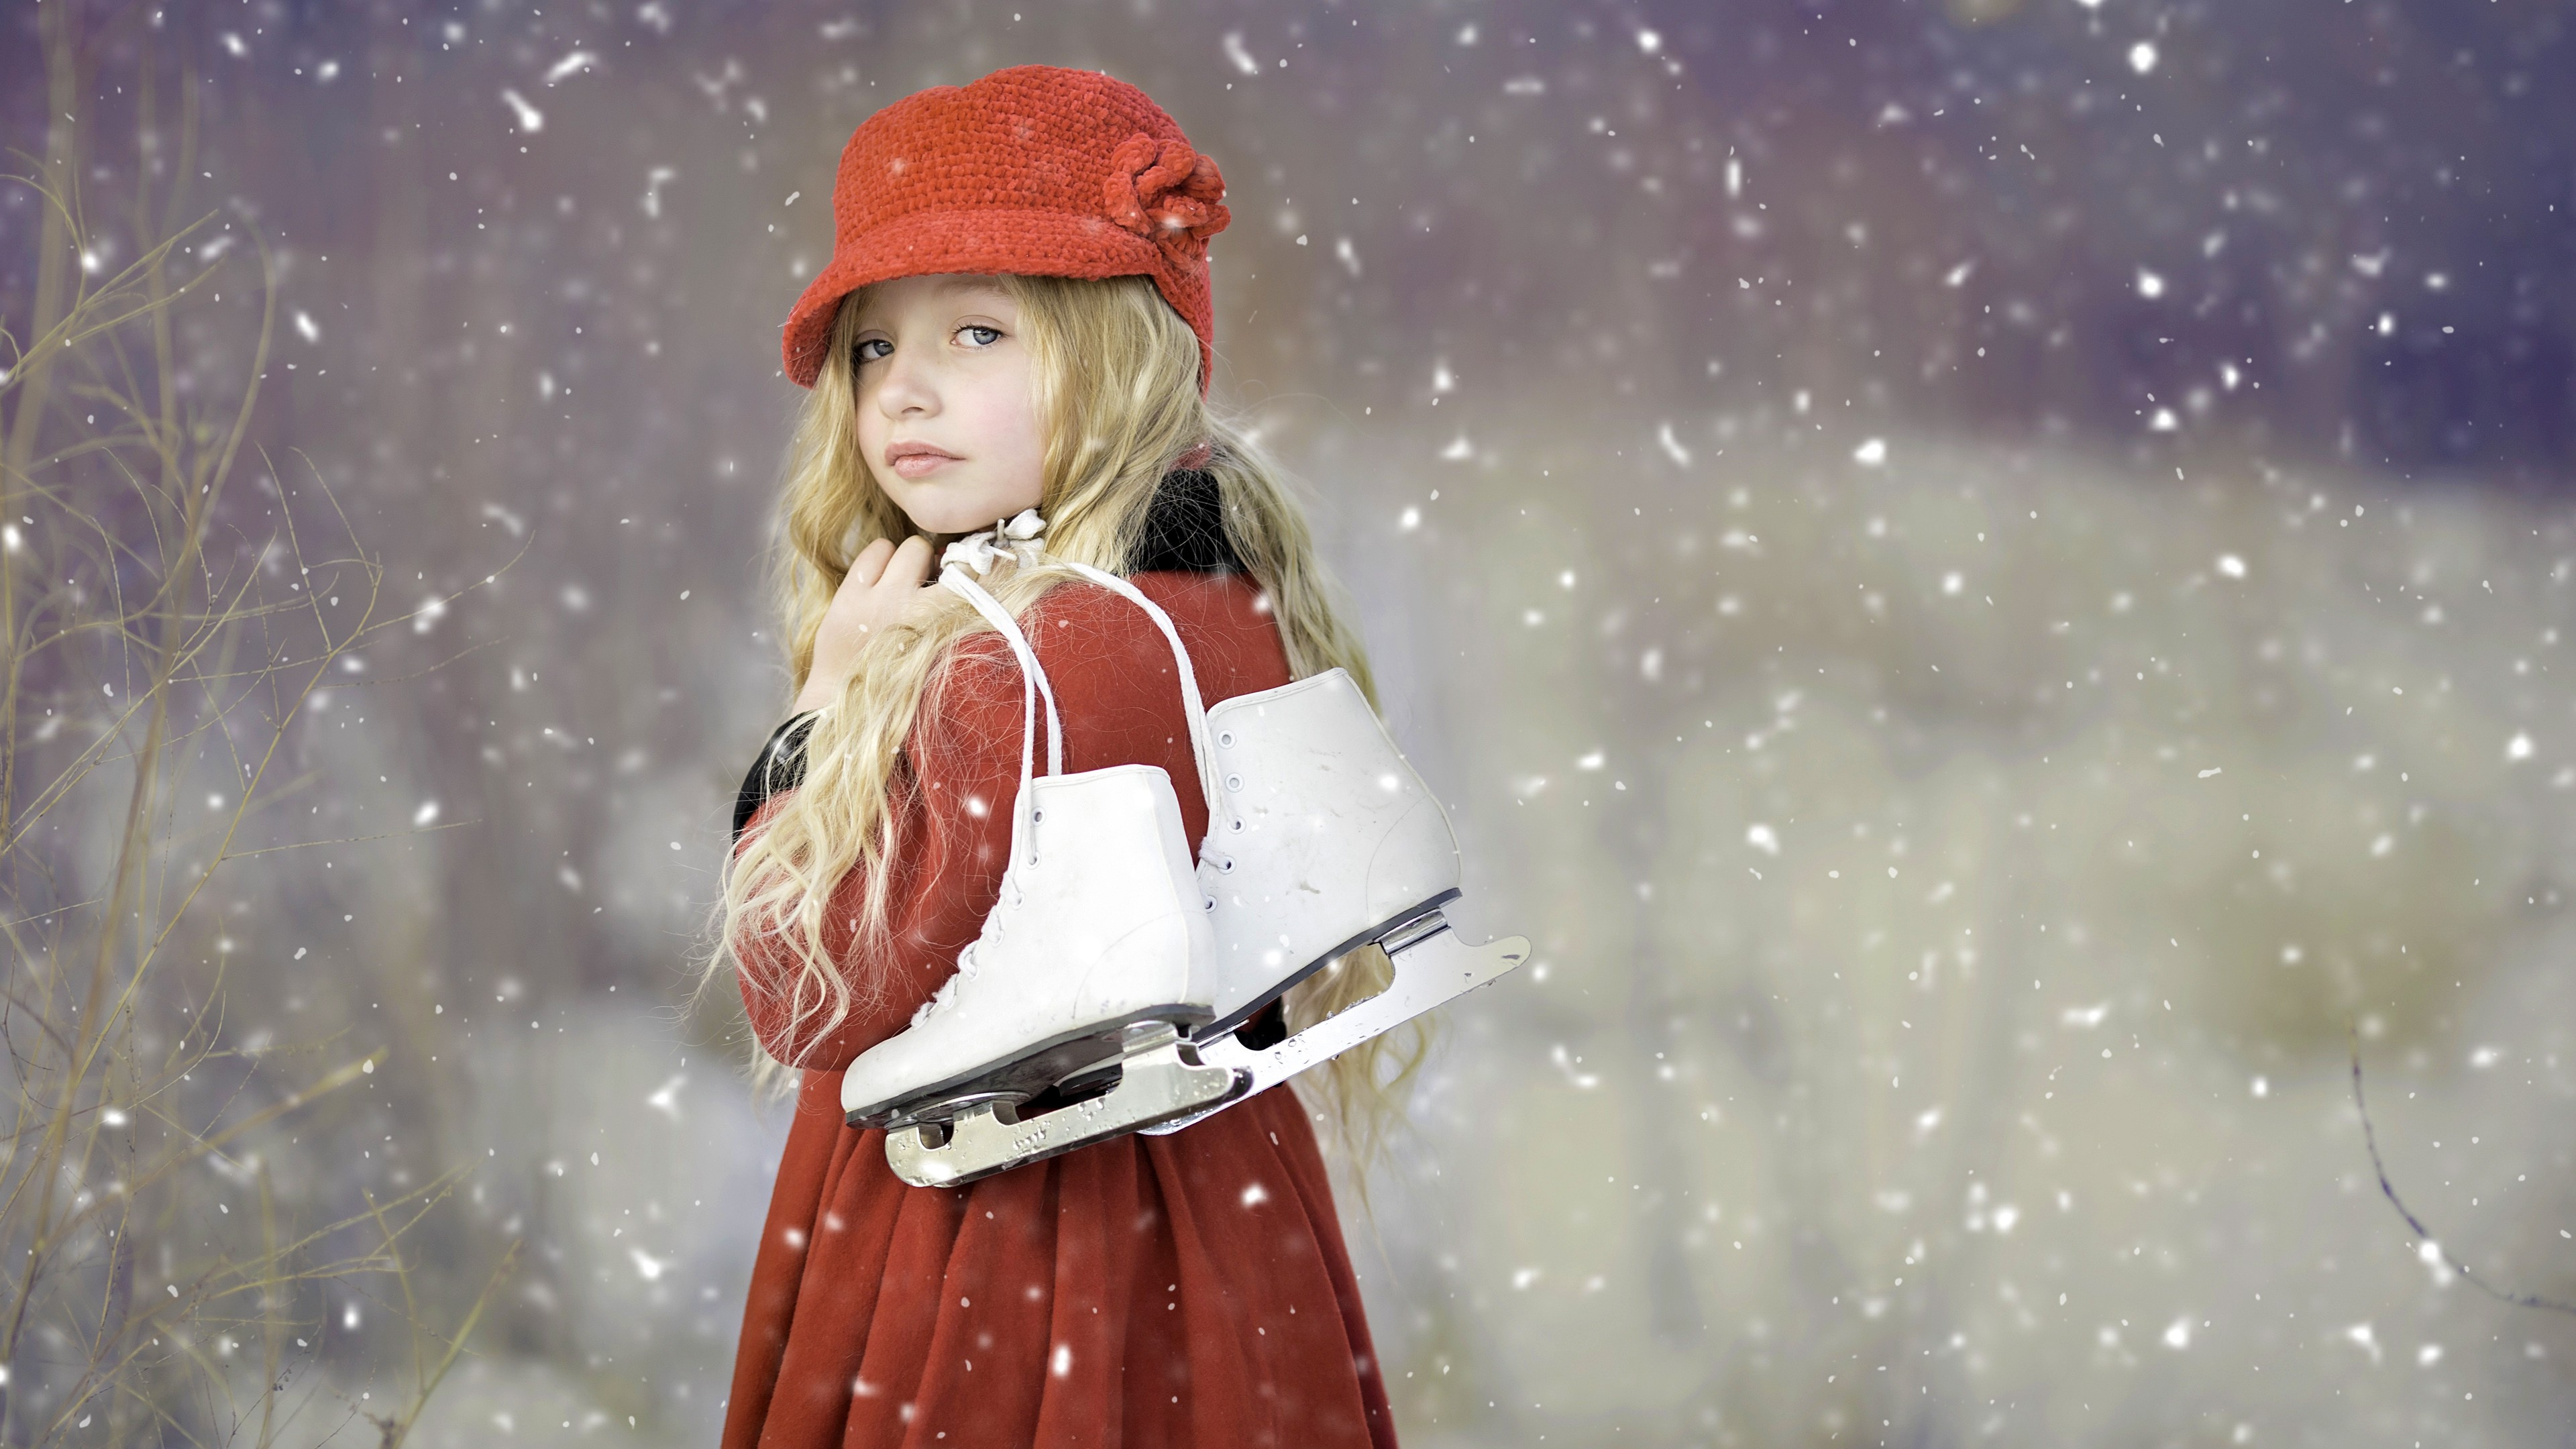 Cute Baby Girl Hd Wallpaper For Mobile Cute Girl Ice Skates Hd Cute 4k Wallpapers Images